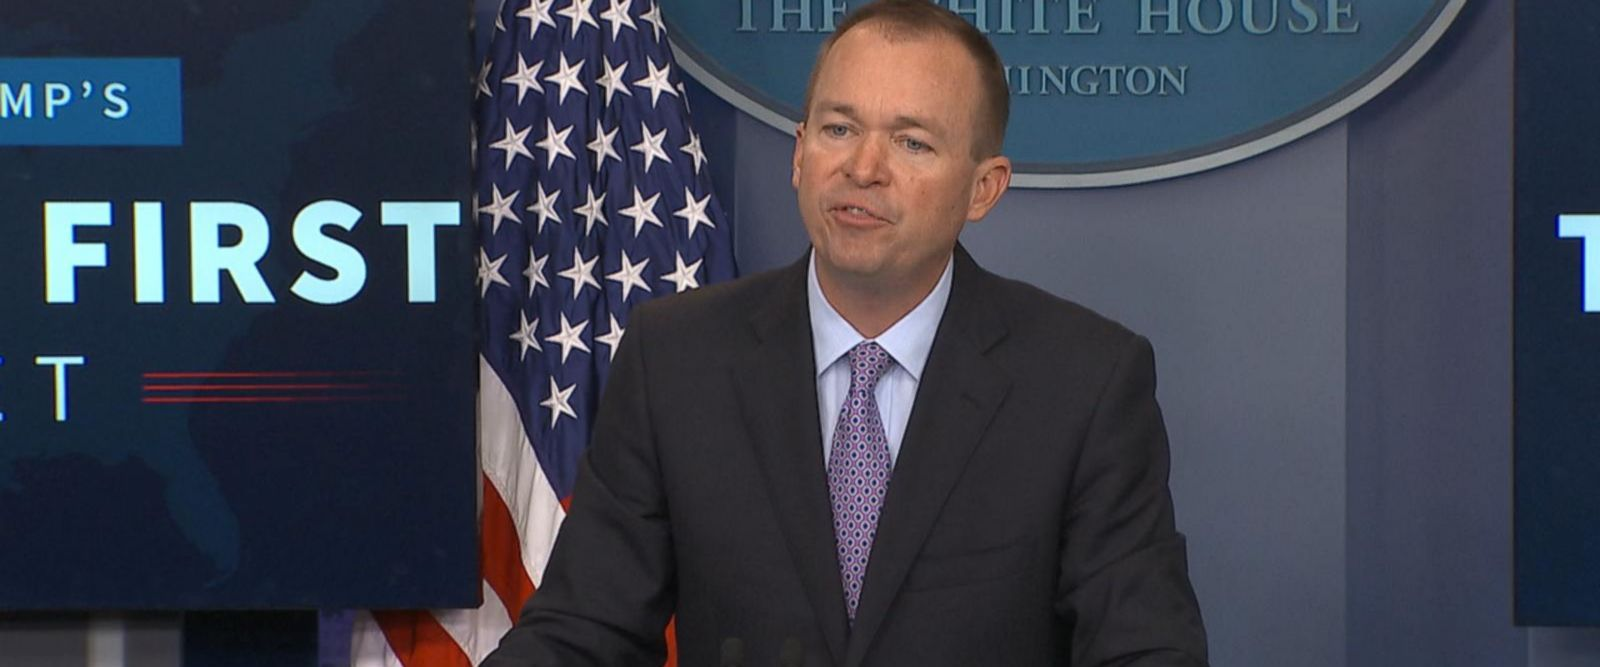 VIDEO: Mulvaney says previous administrations spent 'too much of your money on climate change'